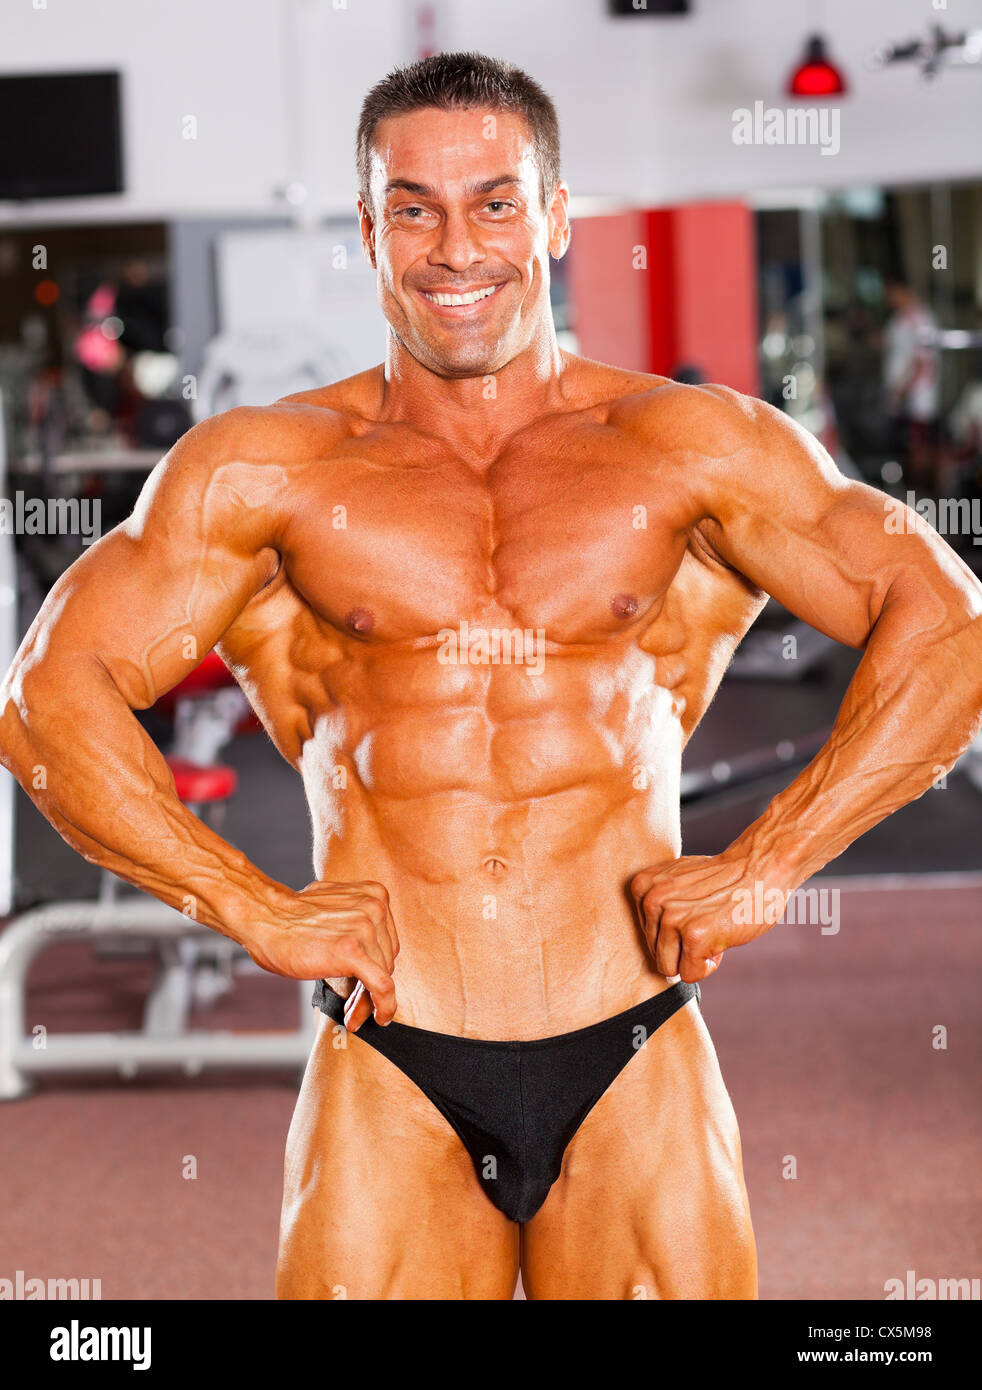 male bodybuilder flexing his muscle in gym - Stock Image